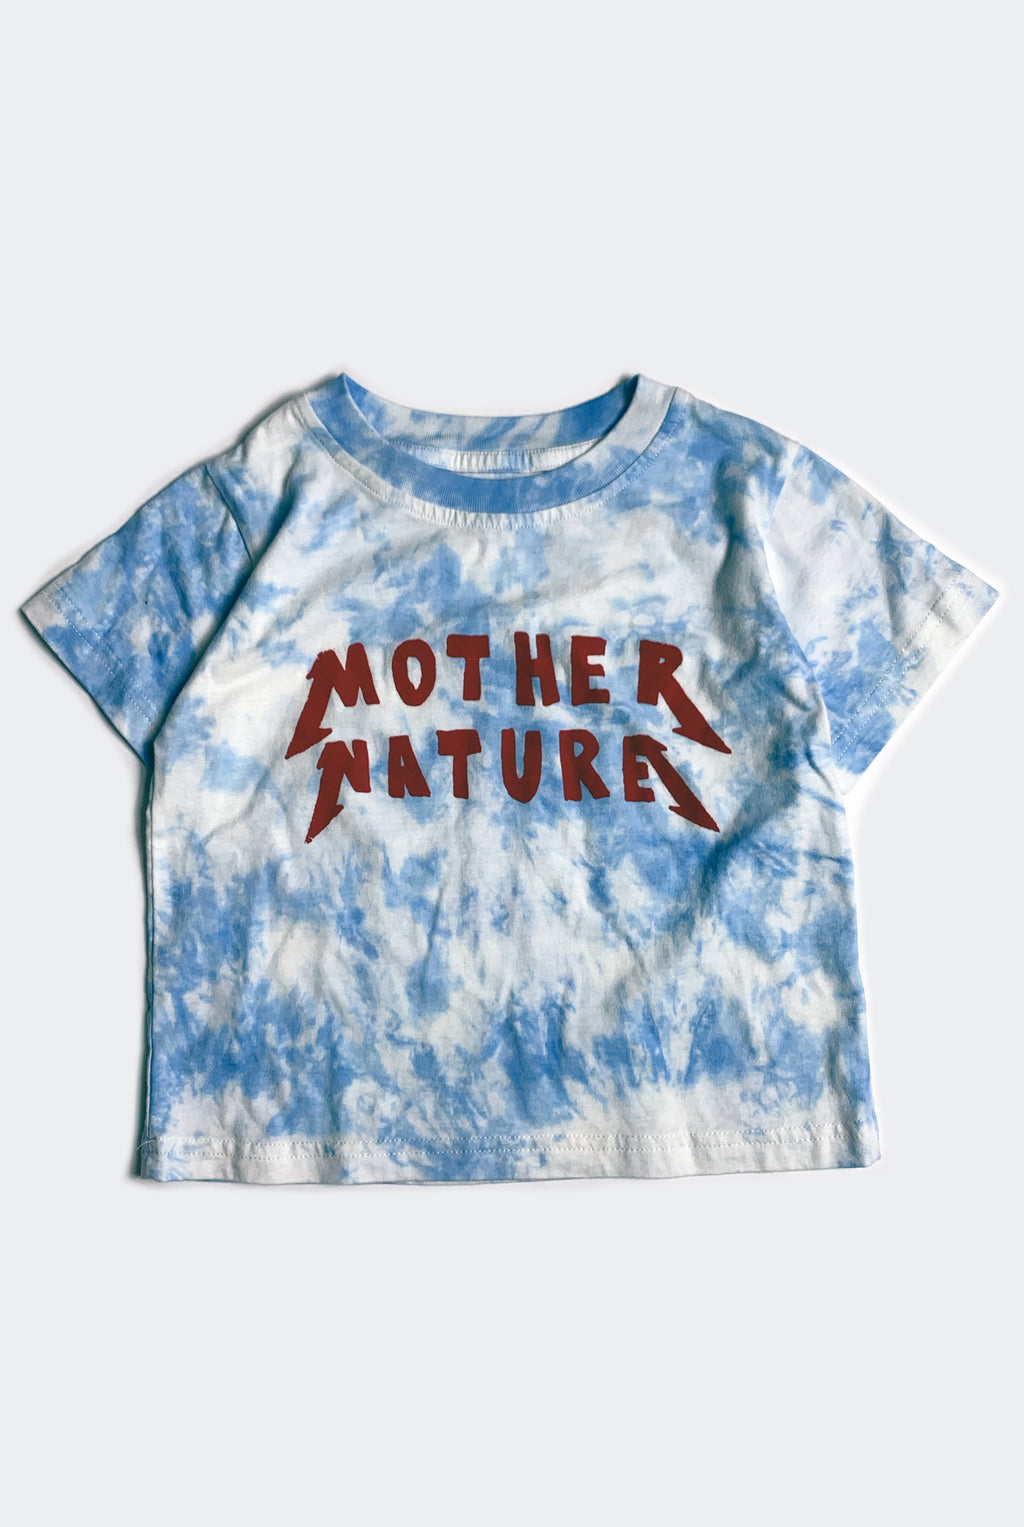 MOTHER NATURE TEE / SKY TIE DYE